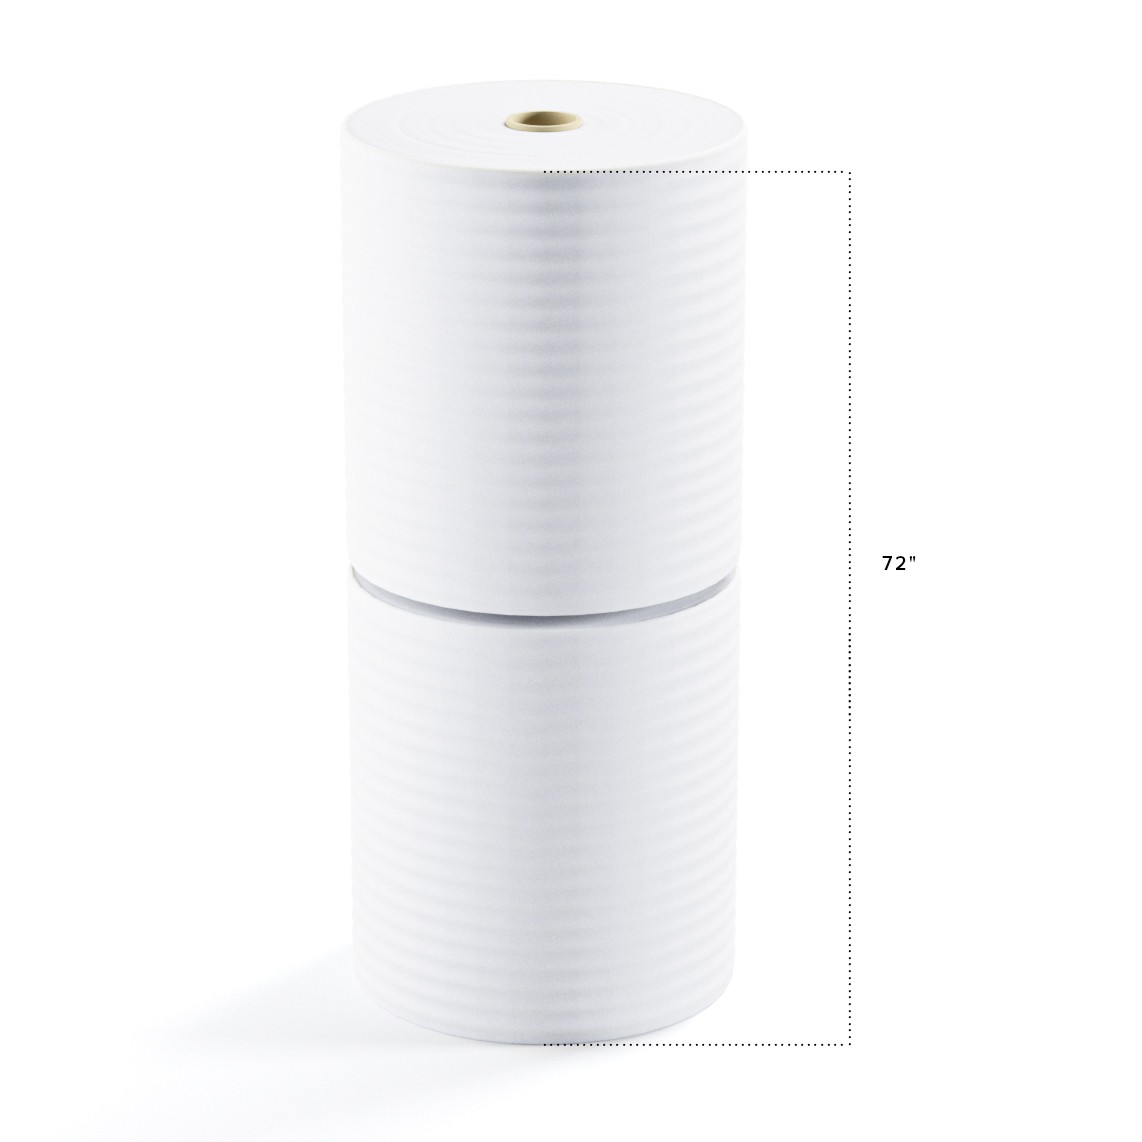 "TOTALPACK® 1/16"" x 36"" x 1250' (No Perforation) Air Foam Rolls, 2 Rolls"